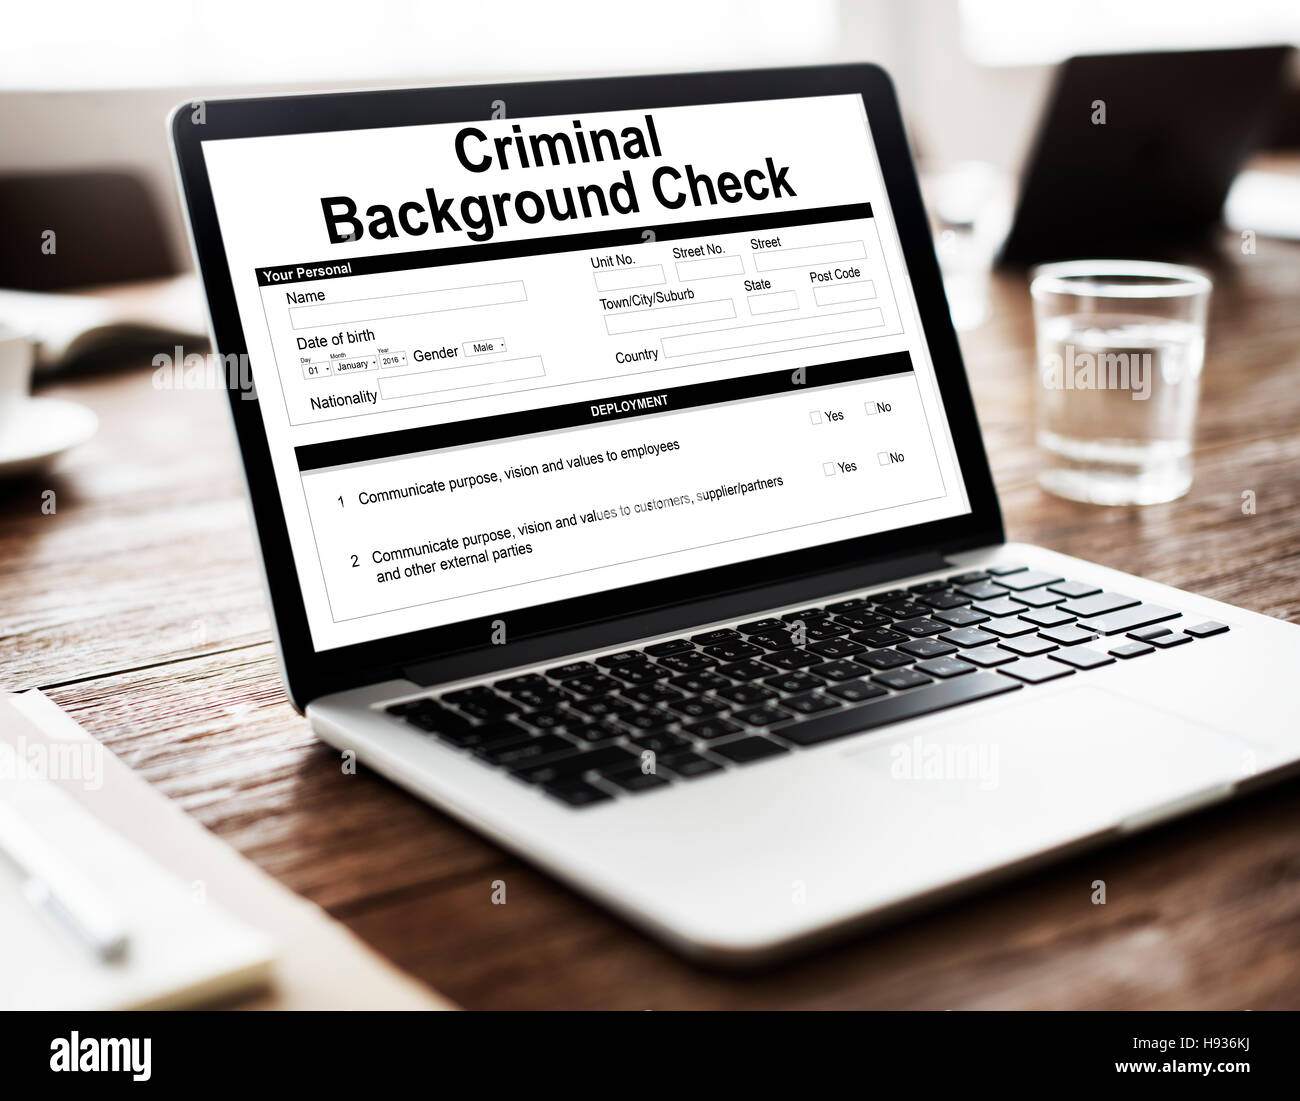 Criminal Background Check Insurance Form Concept Stock Photo     Criminal Background Check Insurance Form Concept